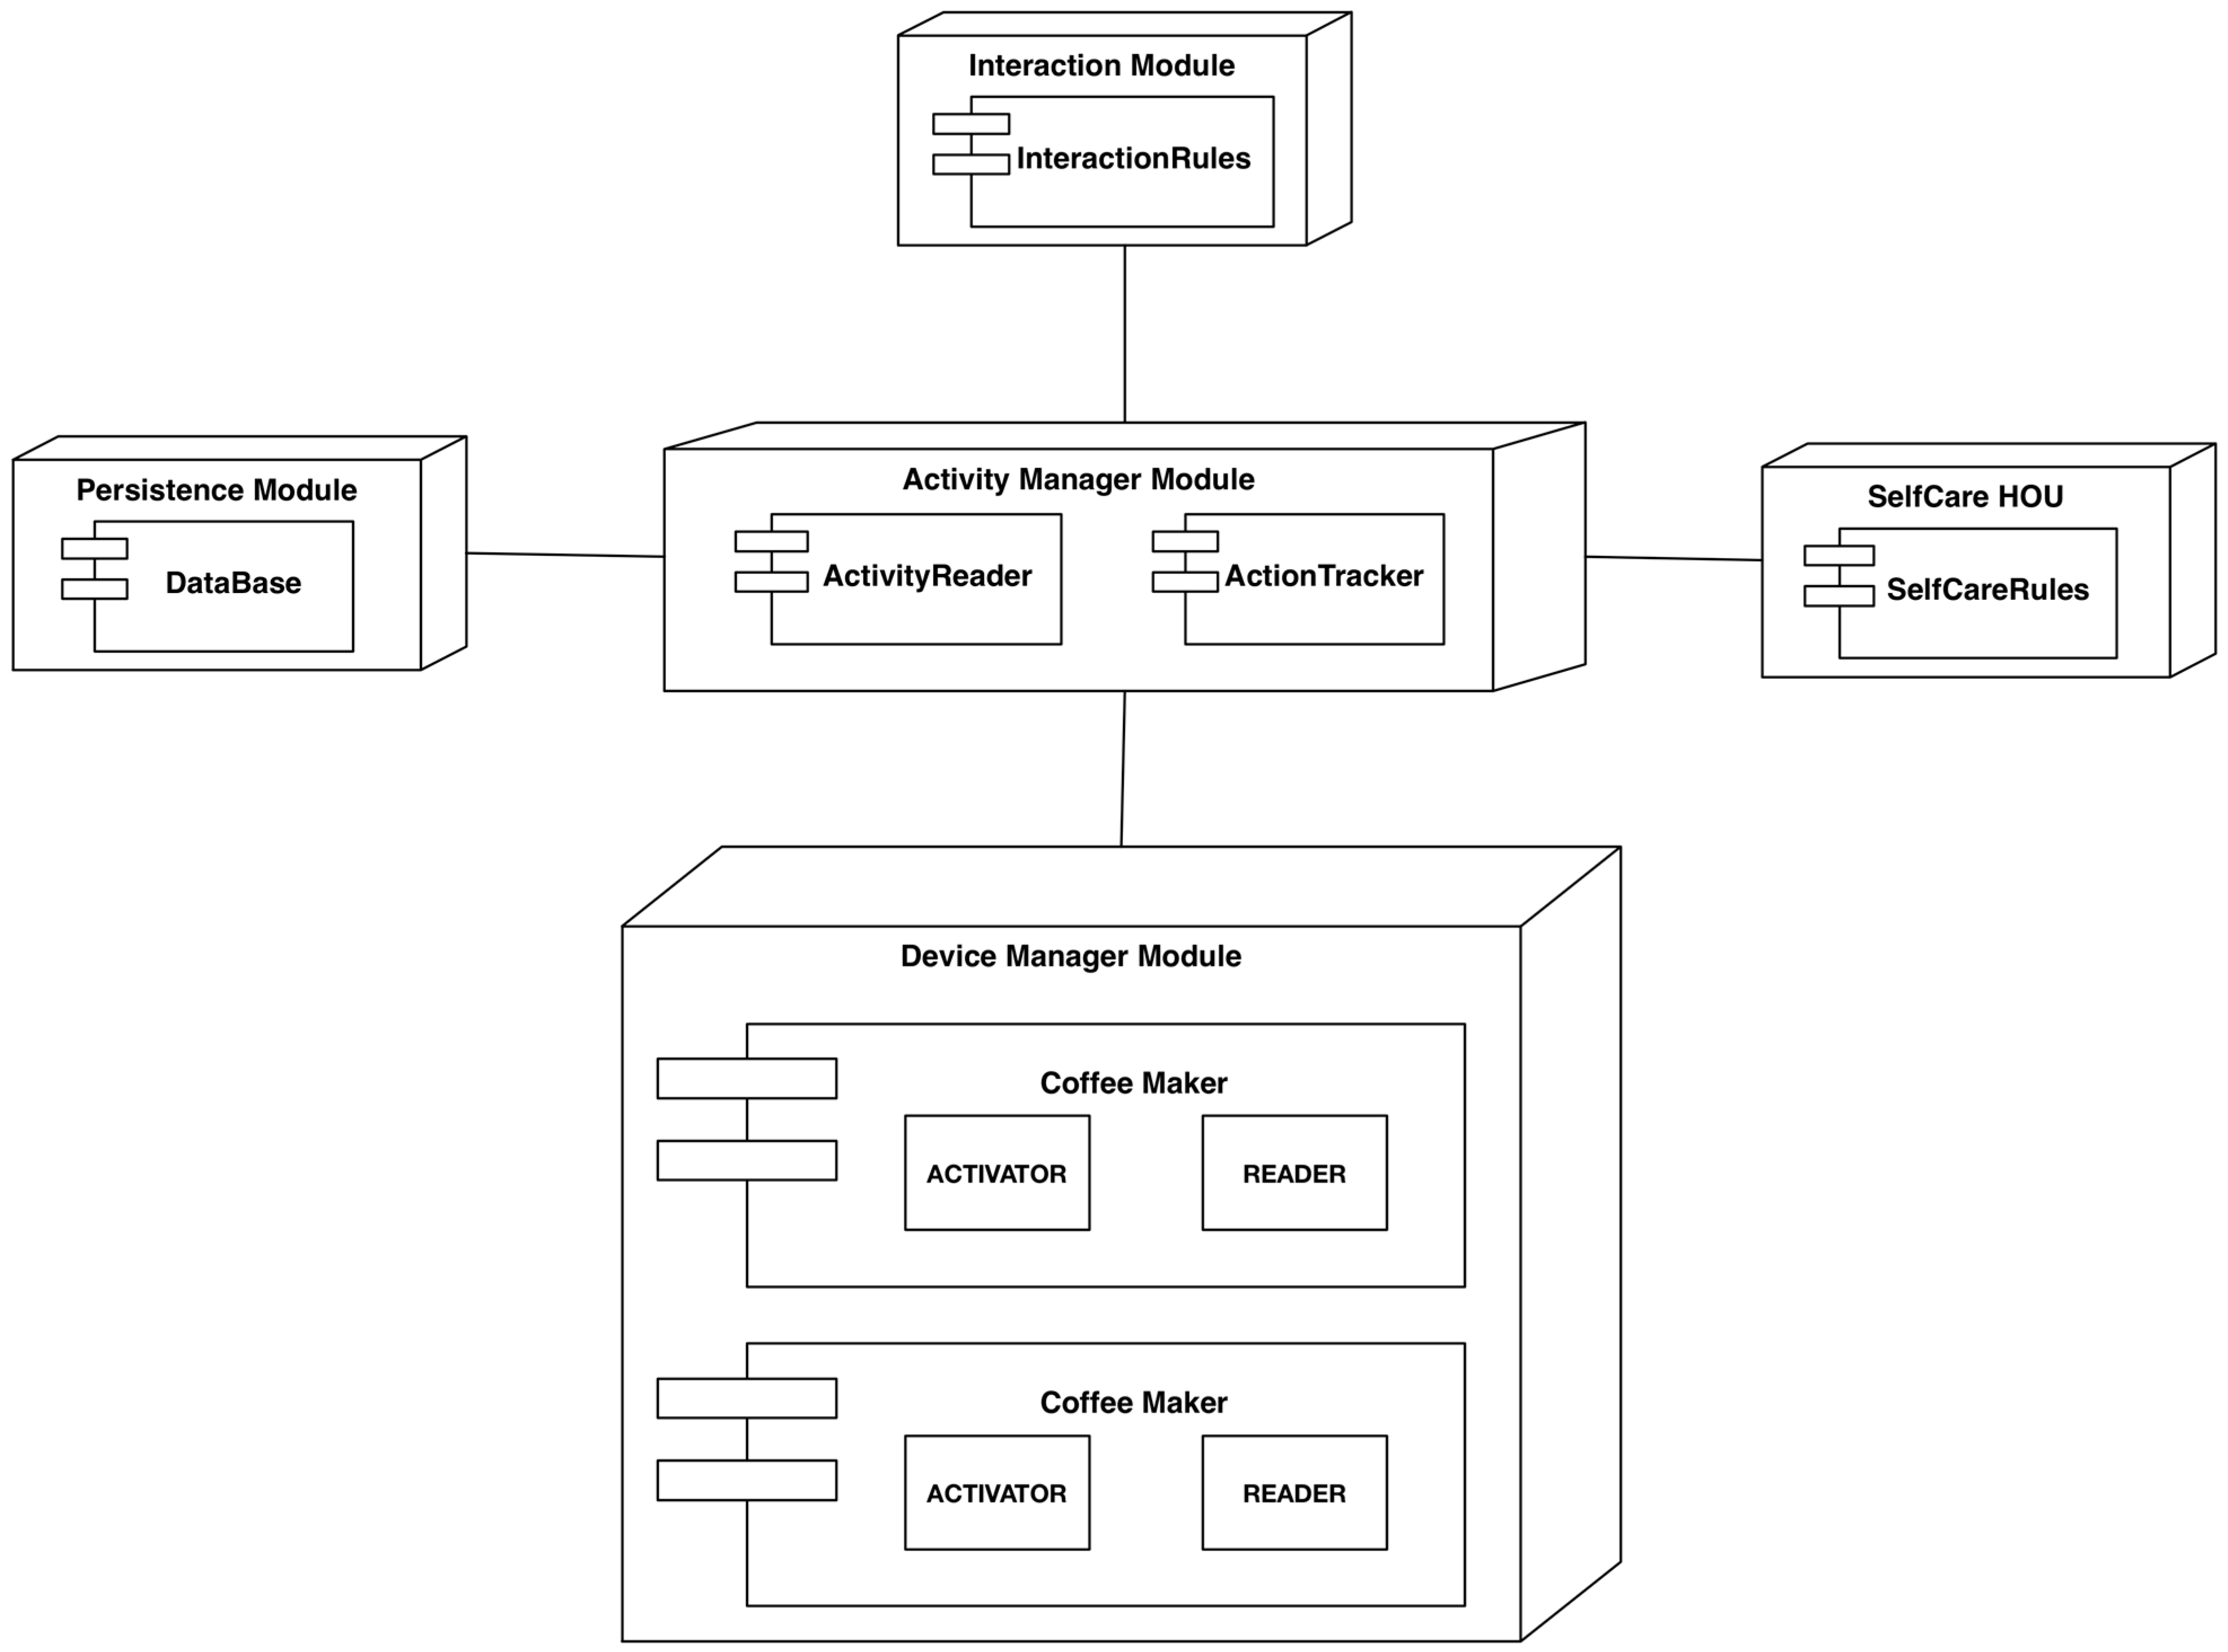 Coffee Maker Object Oriented Design : Sensors Free Full-Text Adaptive Software Architecture Based on Confident HCI for the ...